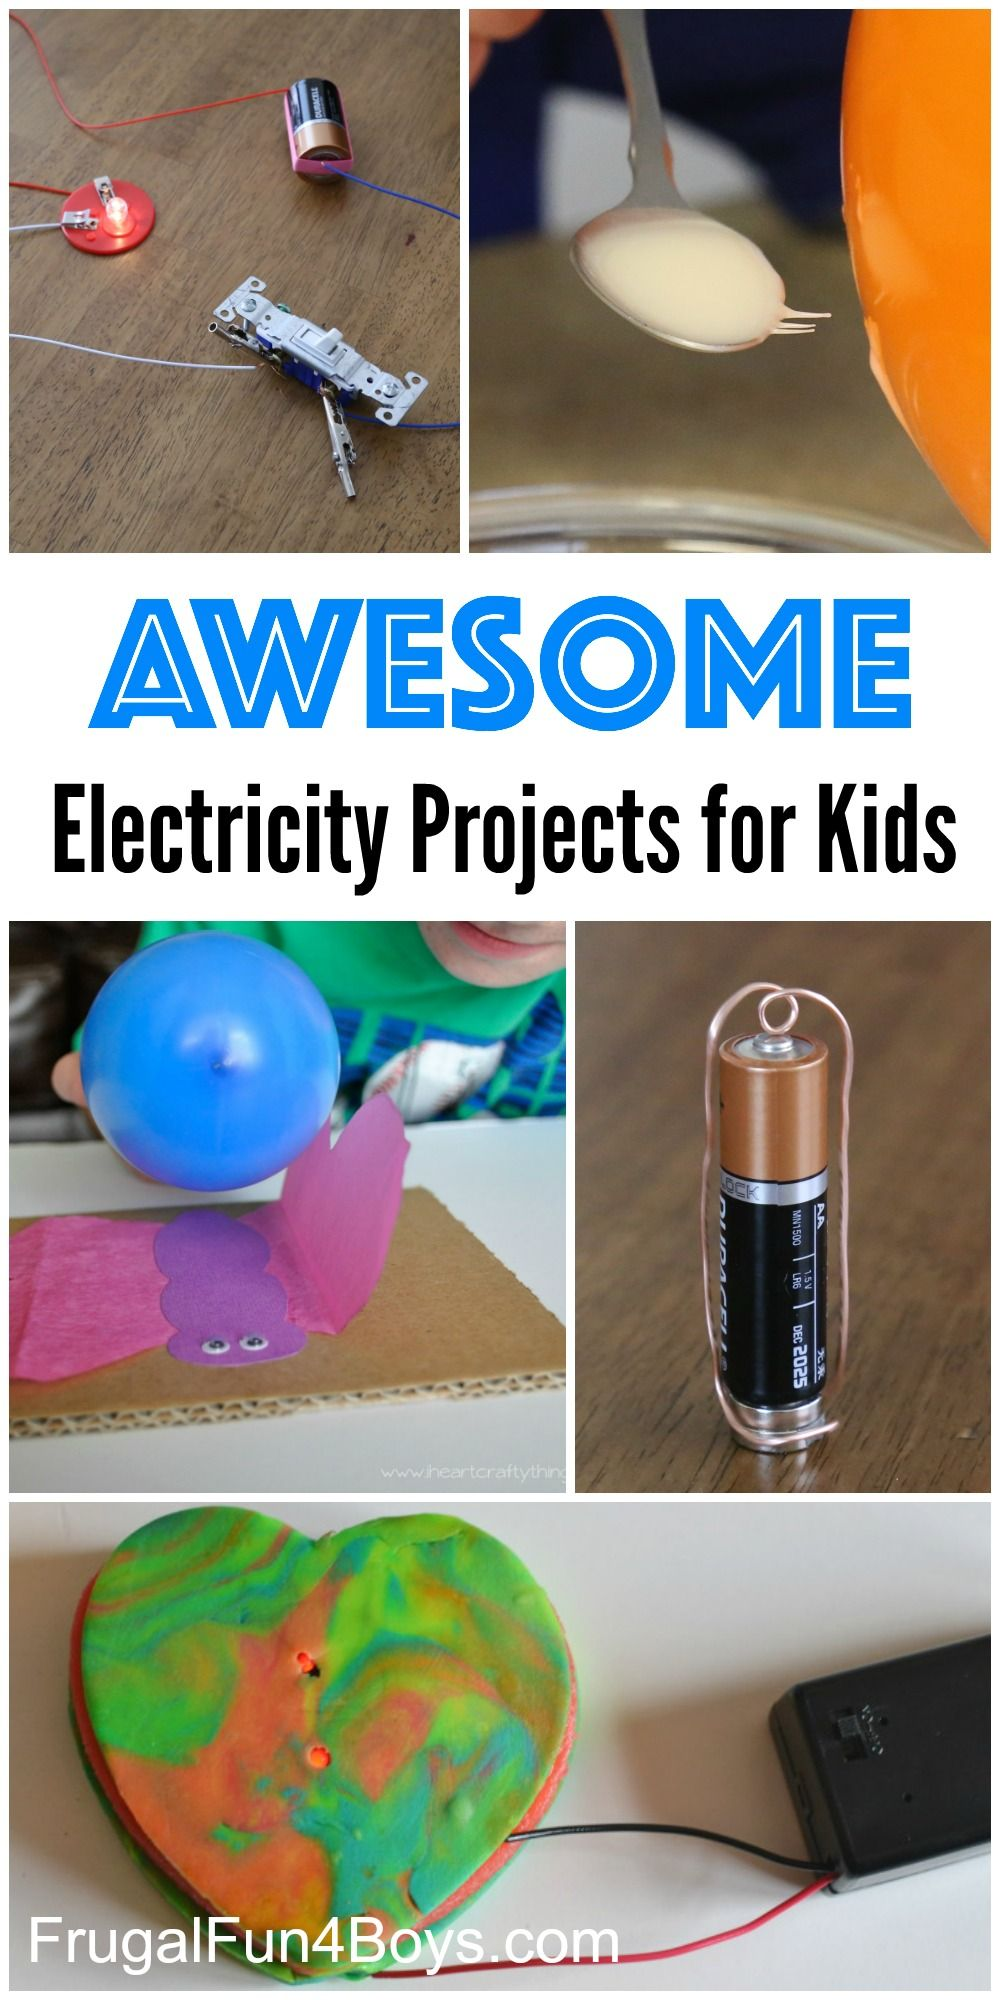 10 Awesome Electricity Projects for Kids - Frugal Fun For Boys